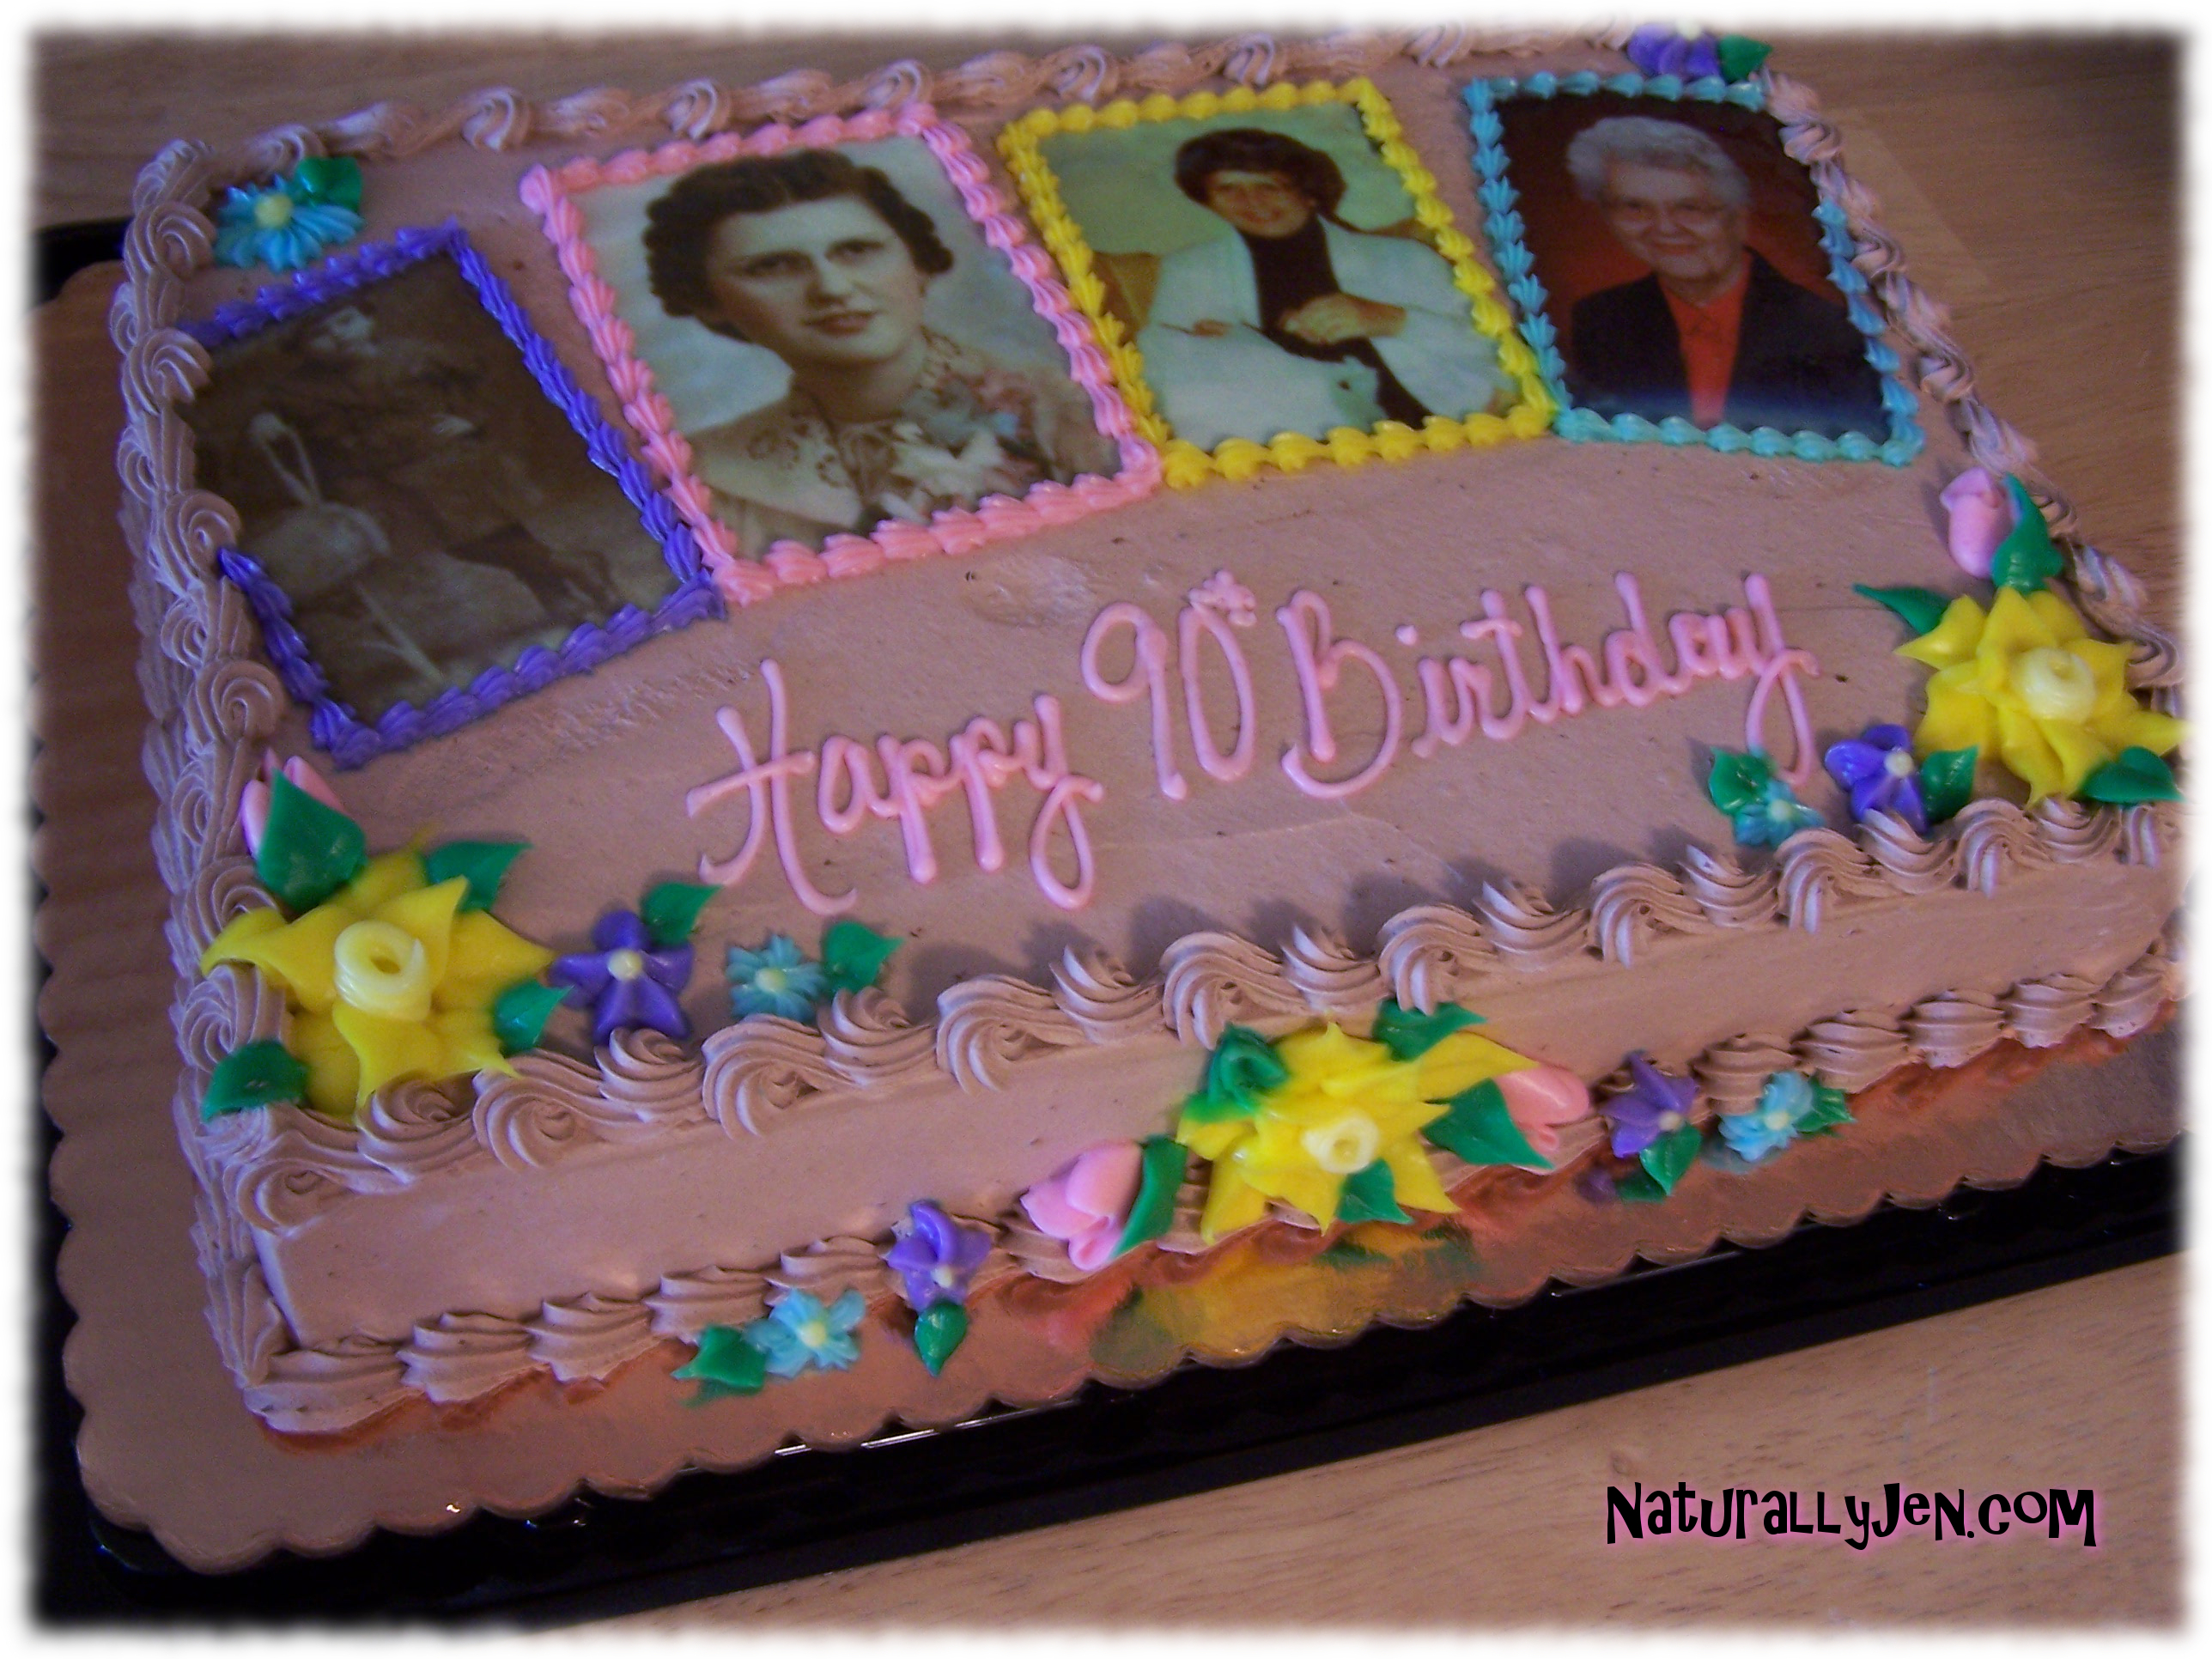 Edible Photographs Printed On Cakes by Naturally Jen